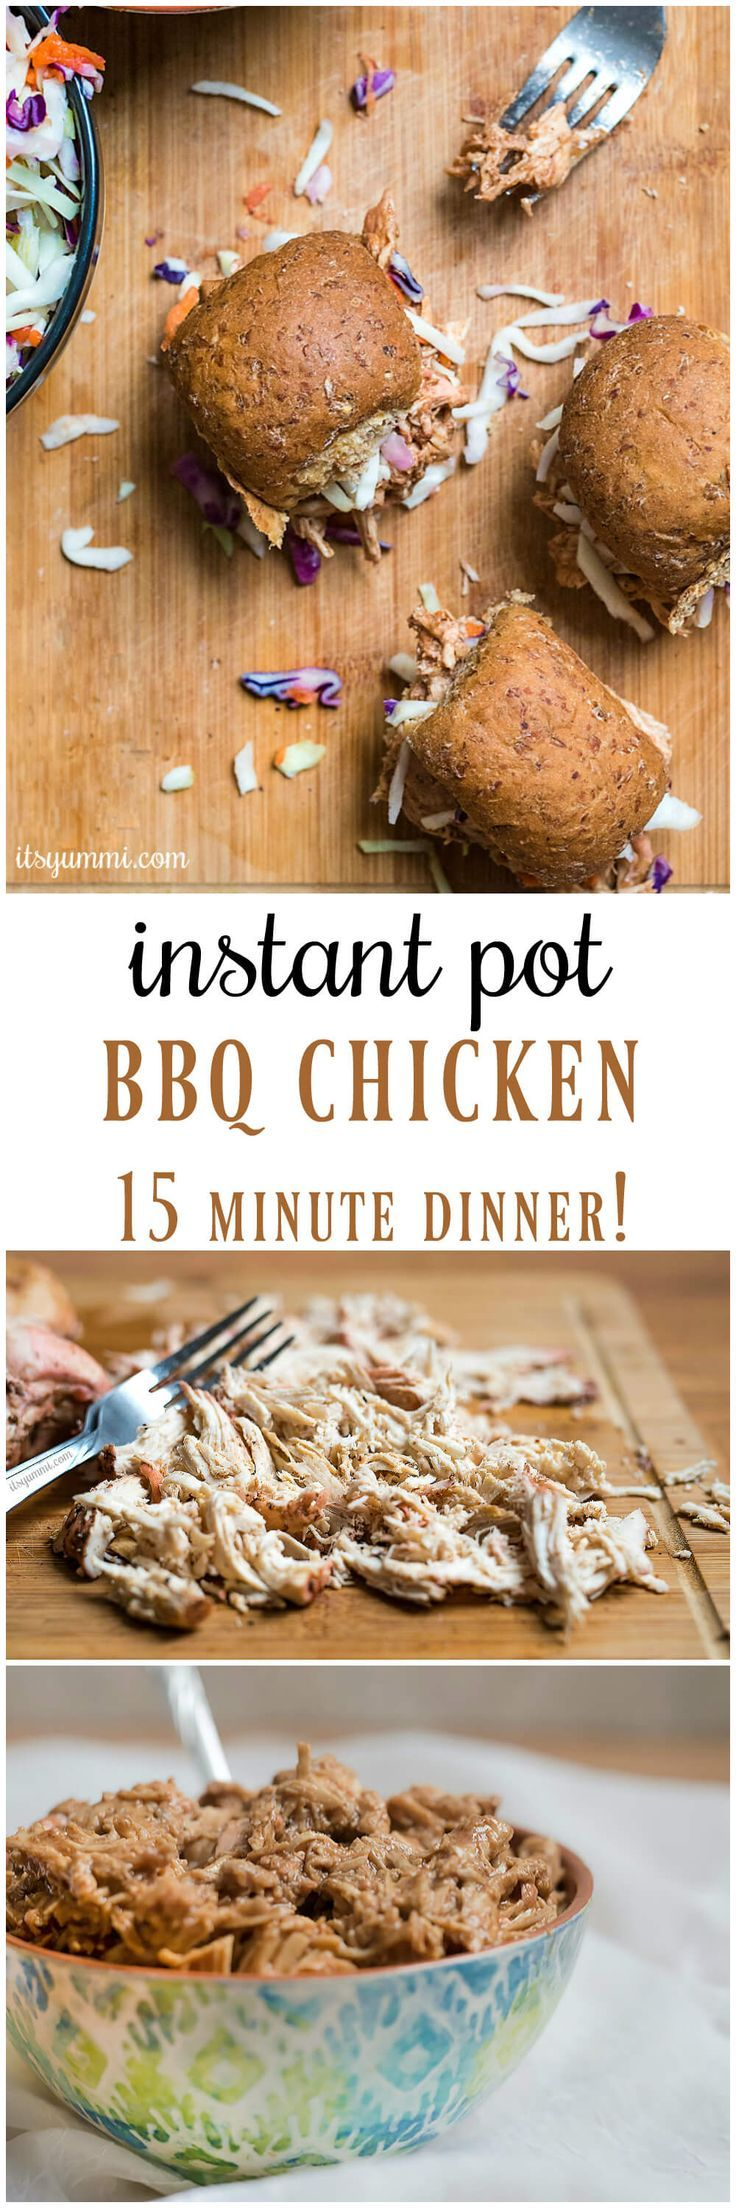 Instant Pot BBQ chicken - an easy pressure cooker chicken recipe, made in 15 minutes! Add it to your favorite soup or casserole recipe. Or, make Instant Pot pulled chicken sliders.#instantpot #recipe #bbq #pressurecooker via @itsyummi